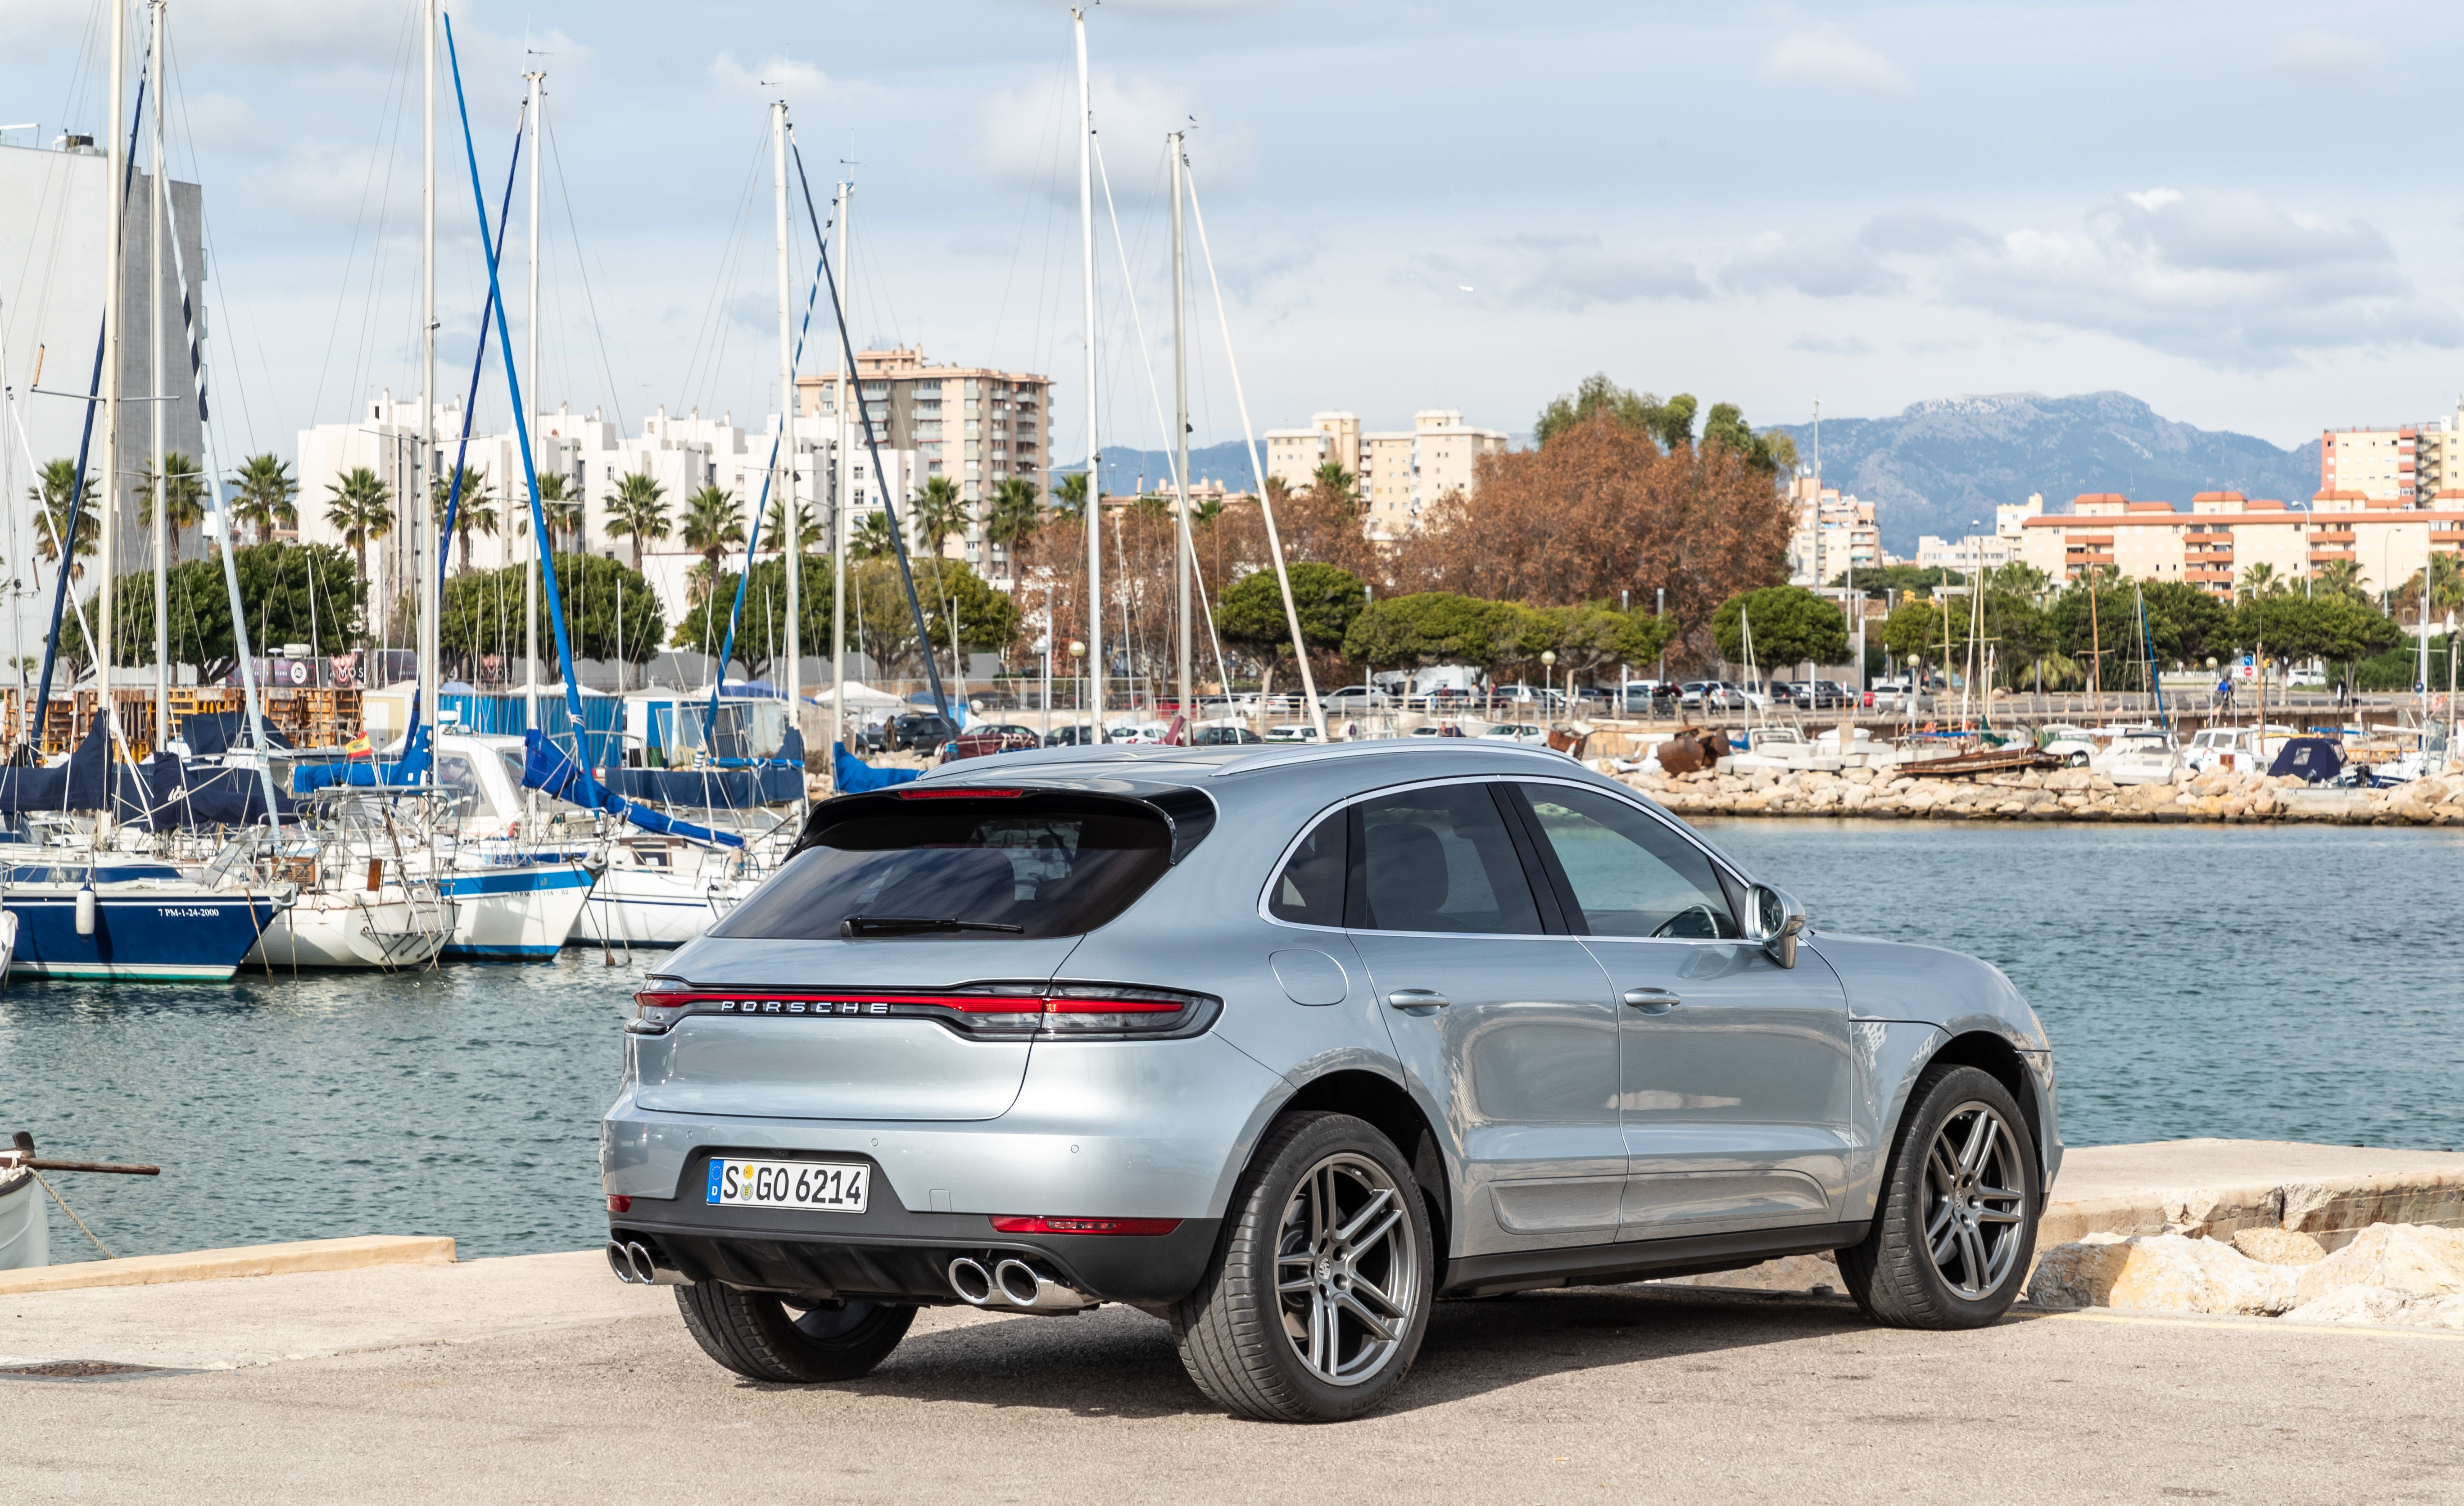 Used Cars Under $2000 Elegant 2019 Porsche Macan Reviews